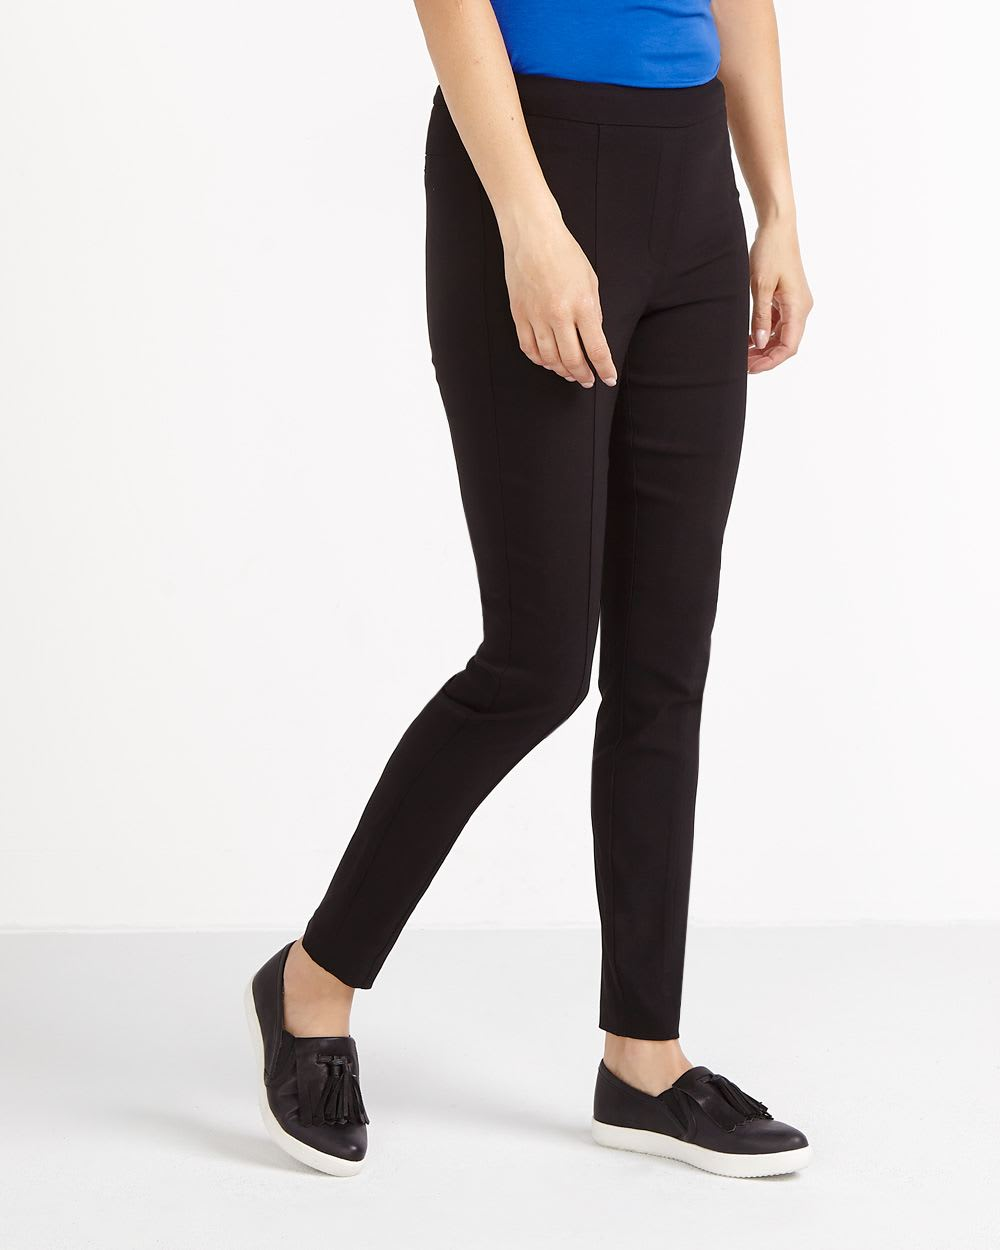 The Tall Iconic Solid Legging